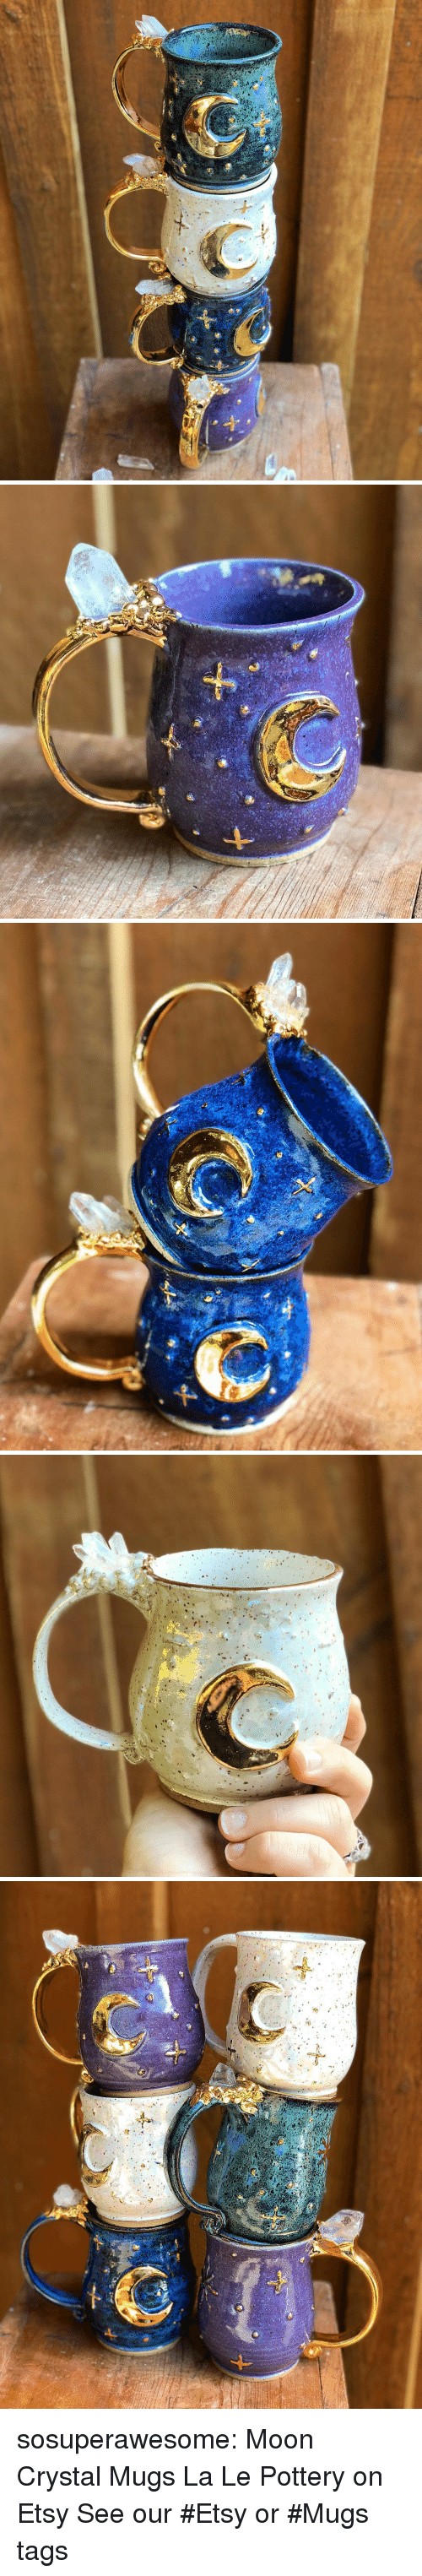 Target, Tumblr, and Blog: sosuperawesome: Moon Crystal Mugs La Le Pottery on Etsy See our #Etsy or #Mugs tags